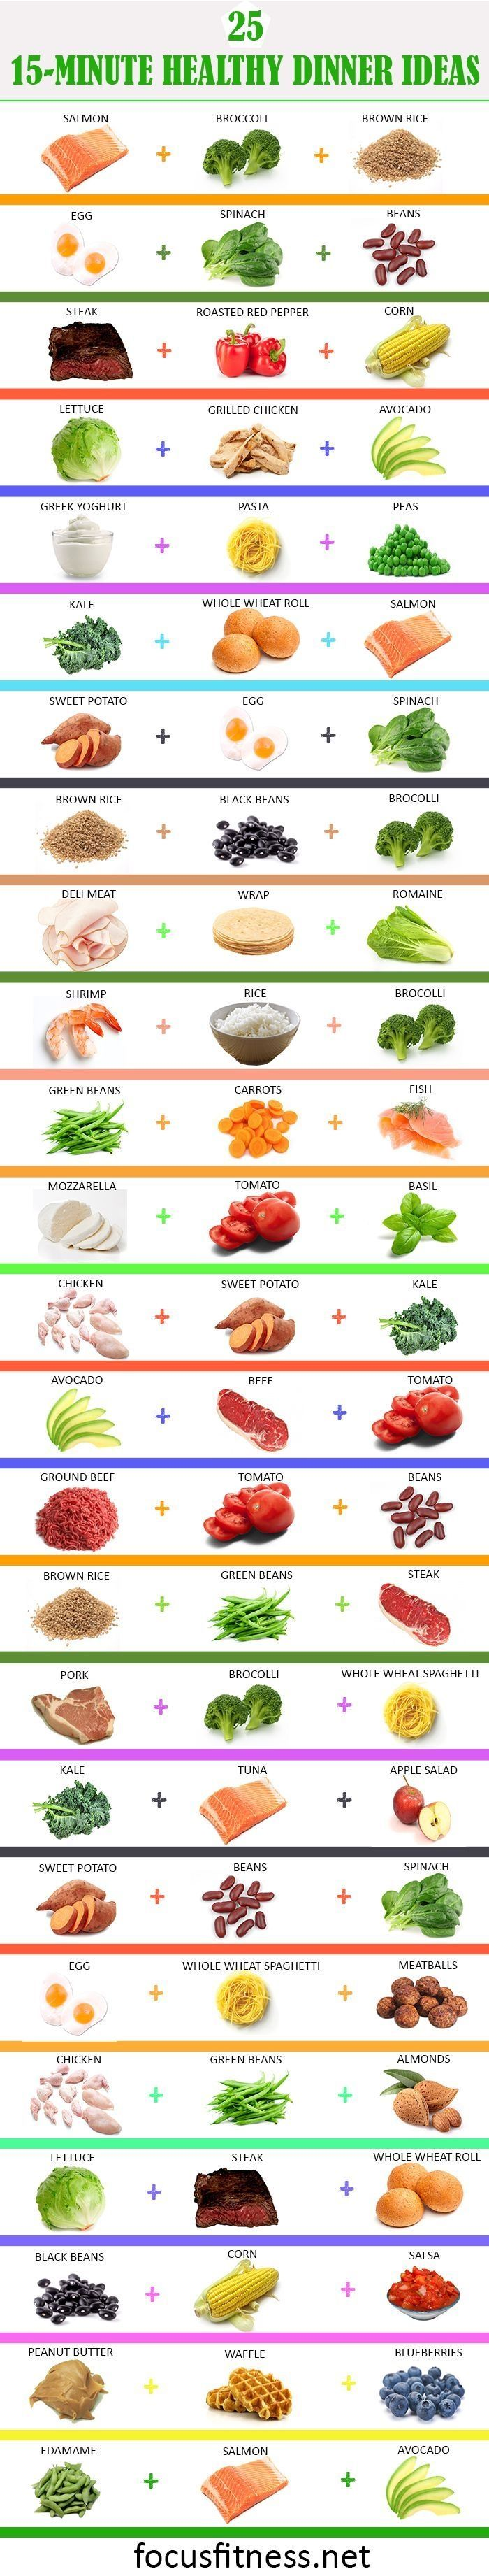 healthy dinner ideas http://focusfitness.net/25-15-minute-healthy-dinner-ideas-for-weight-loss/ #totalbodytransformation